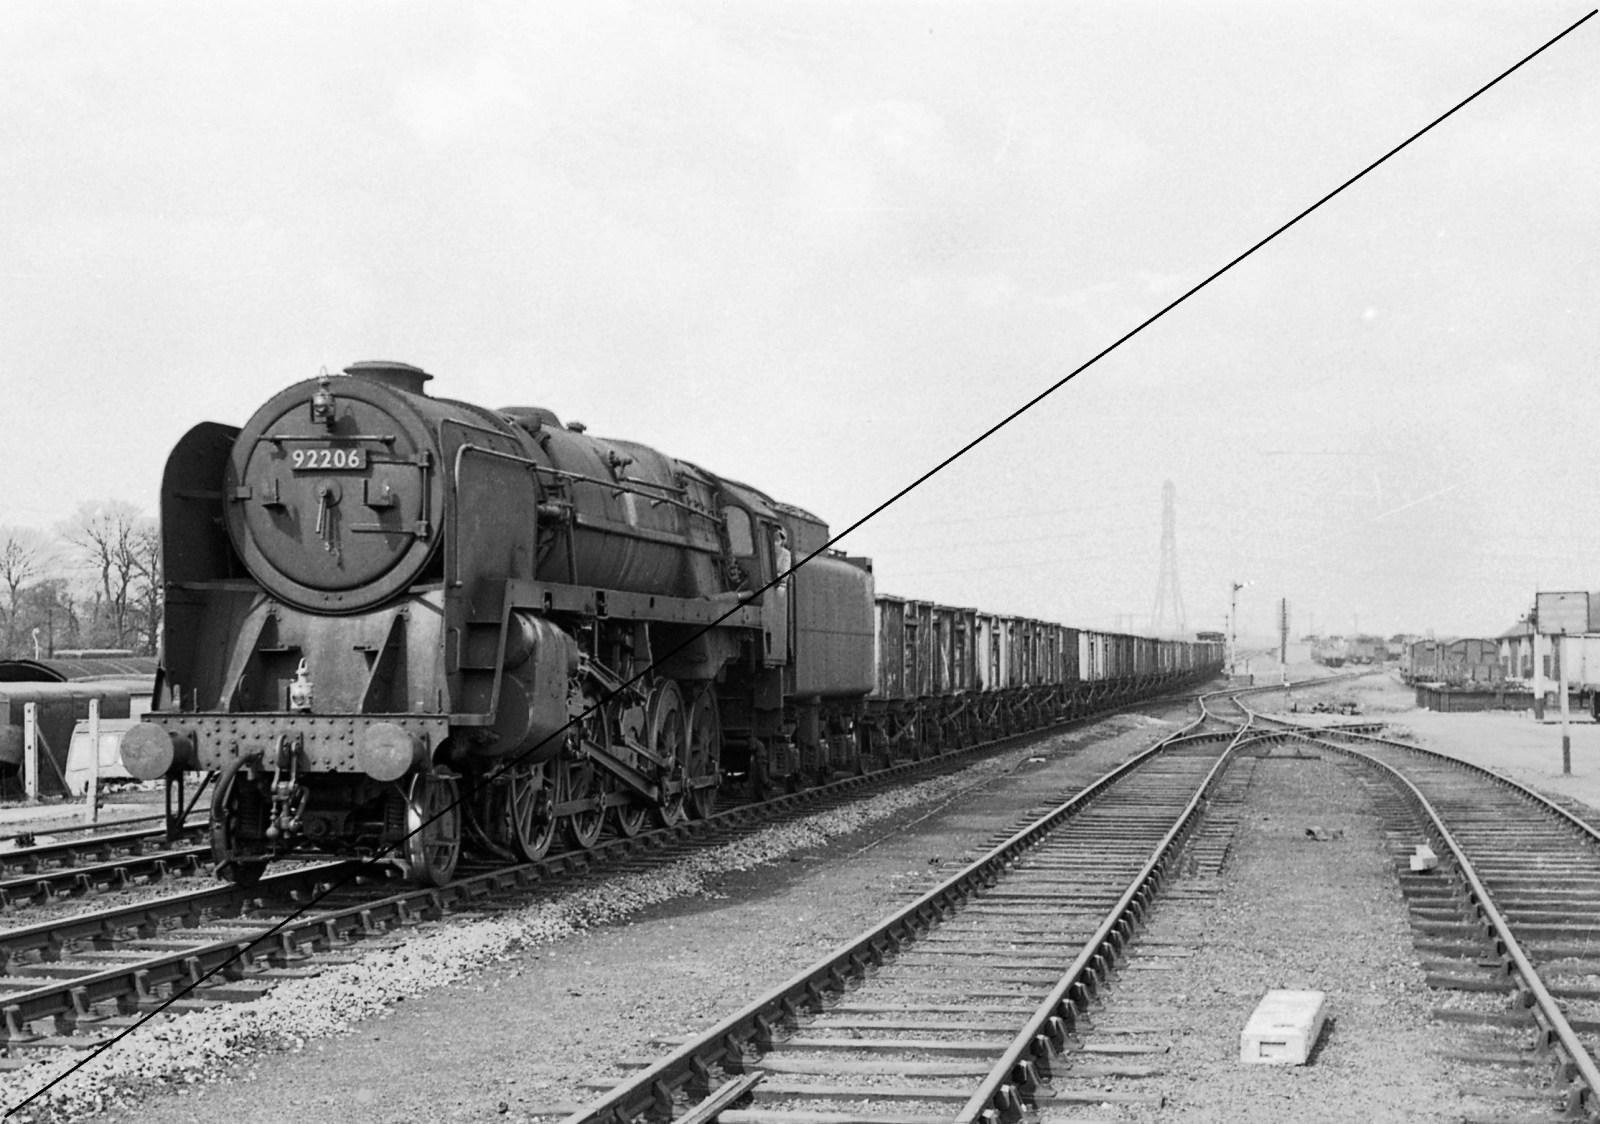 CAI526-SW-1959, Class BR9F, No.92206, (Shed Code.50A, York North), approaching Beighton Station Signal Box & Level Crossing, view looking North-18-04-1964.jpg